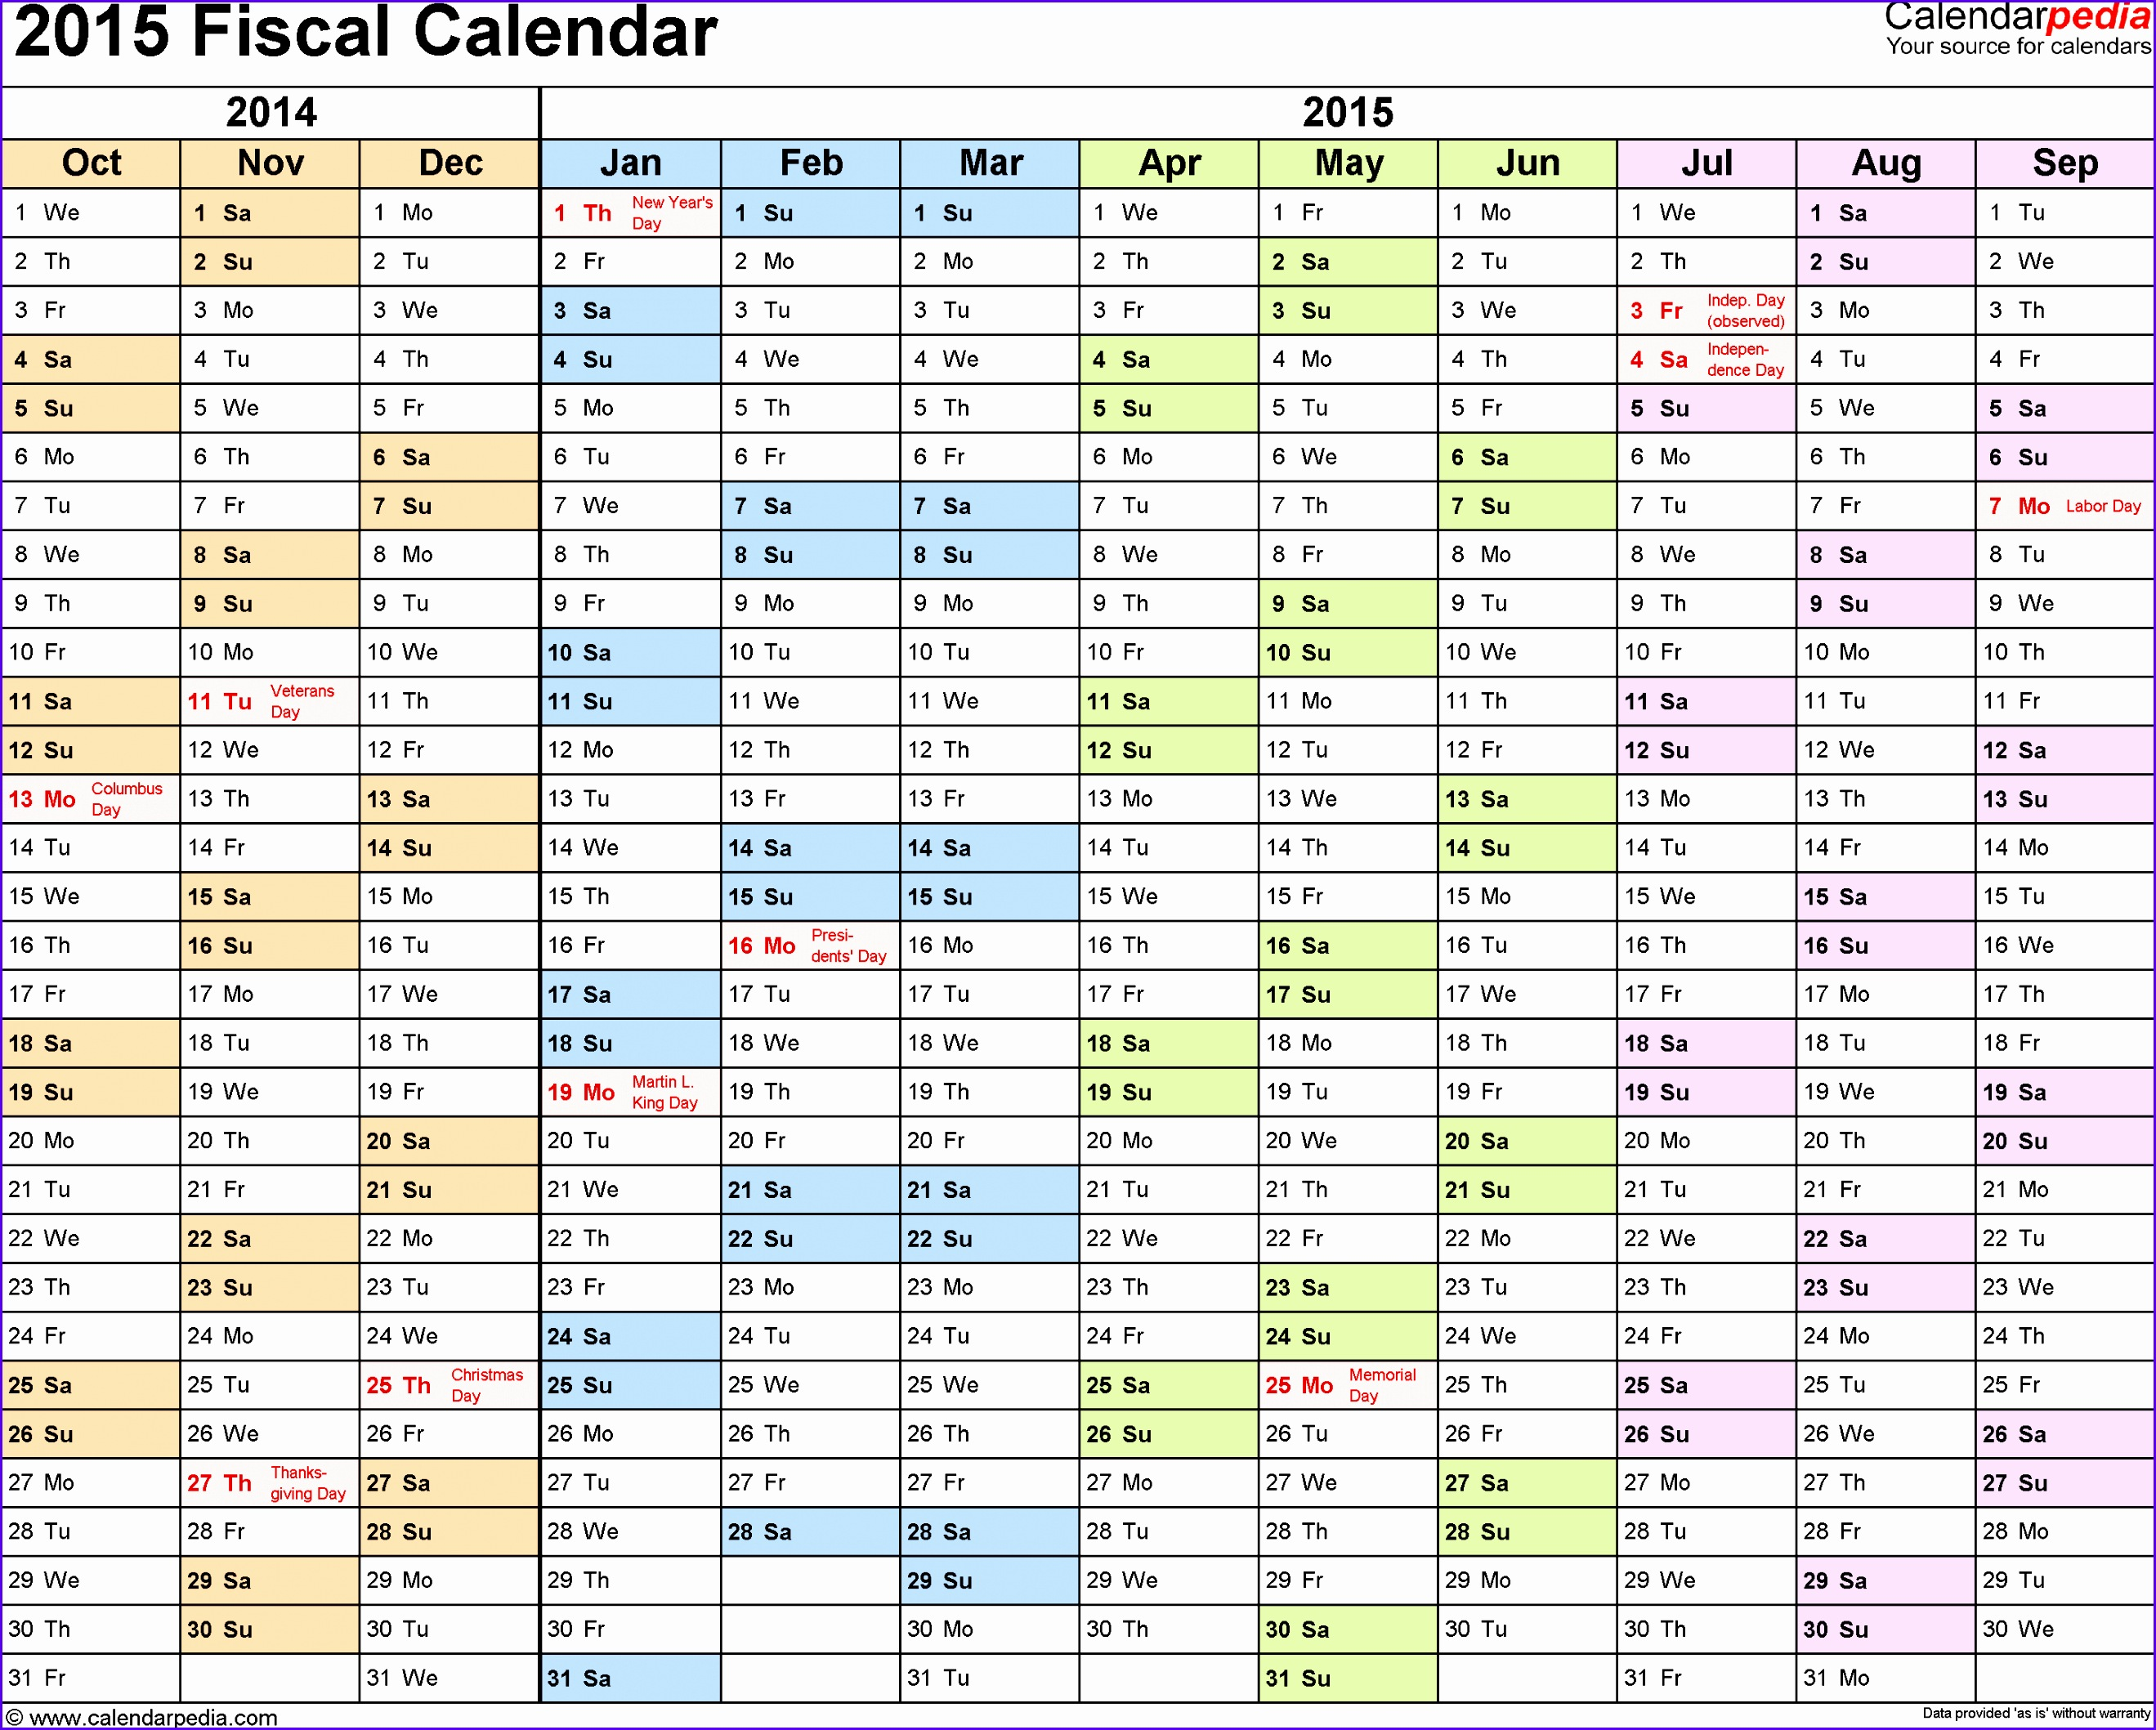 Template 1 Fiscal year calendar 2015 for PDF landscape orientation months horizontally 26382117